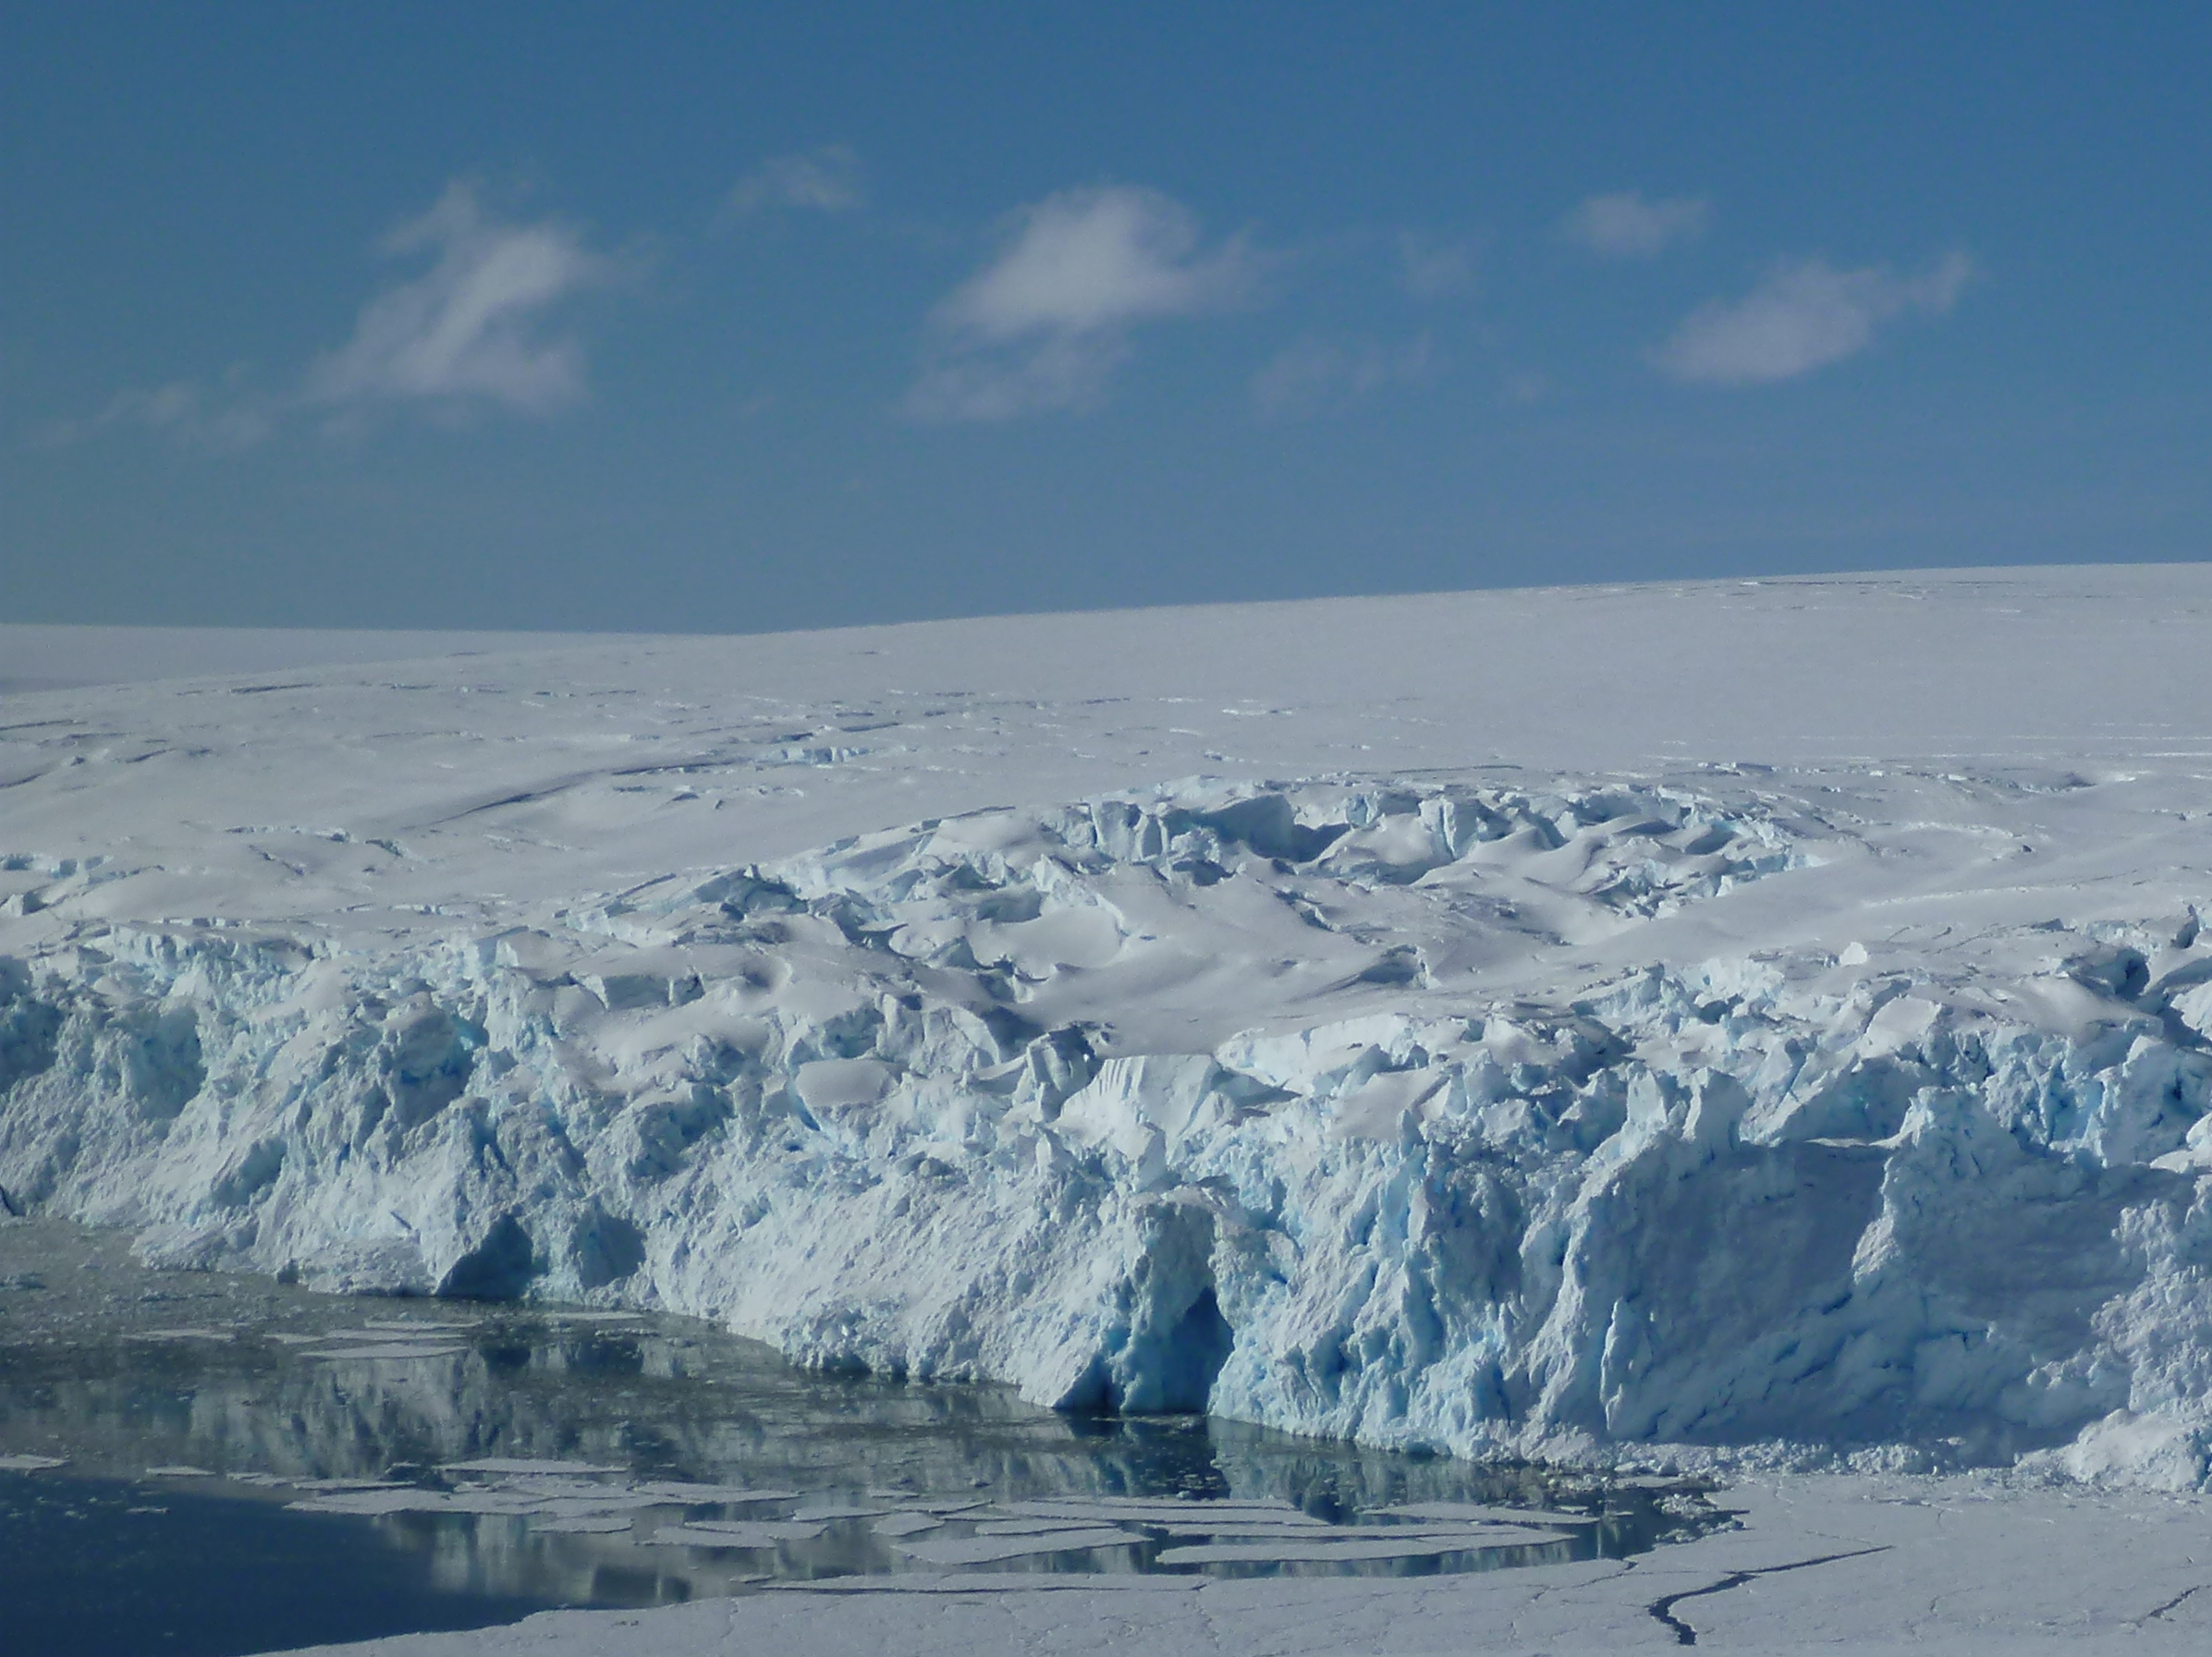 Figure 1. Glacier and sea ice on the West Antarctic Peninsula